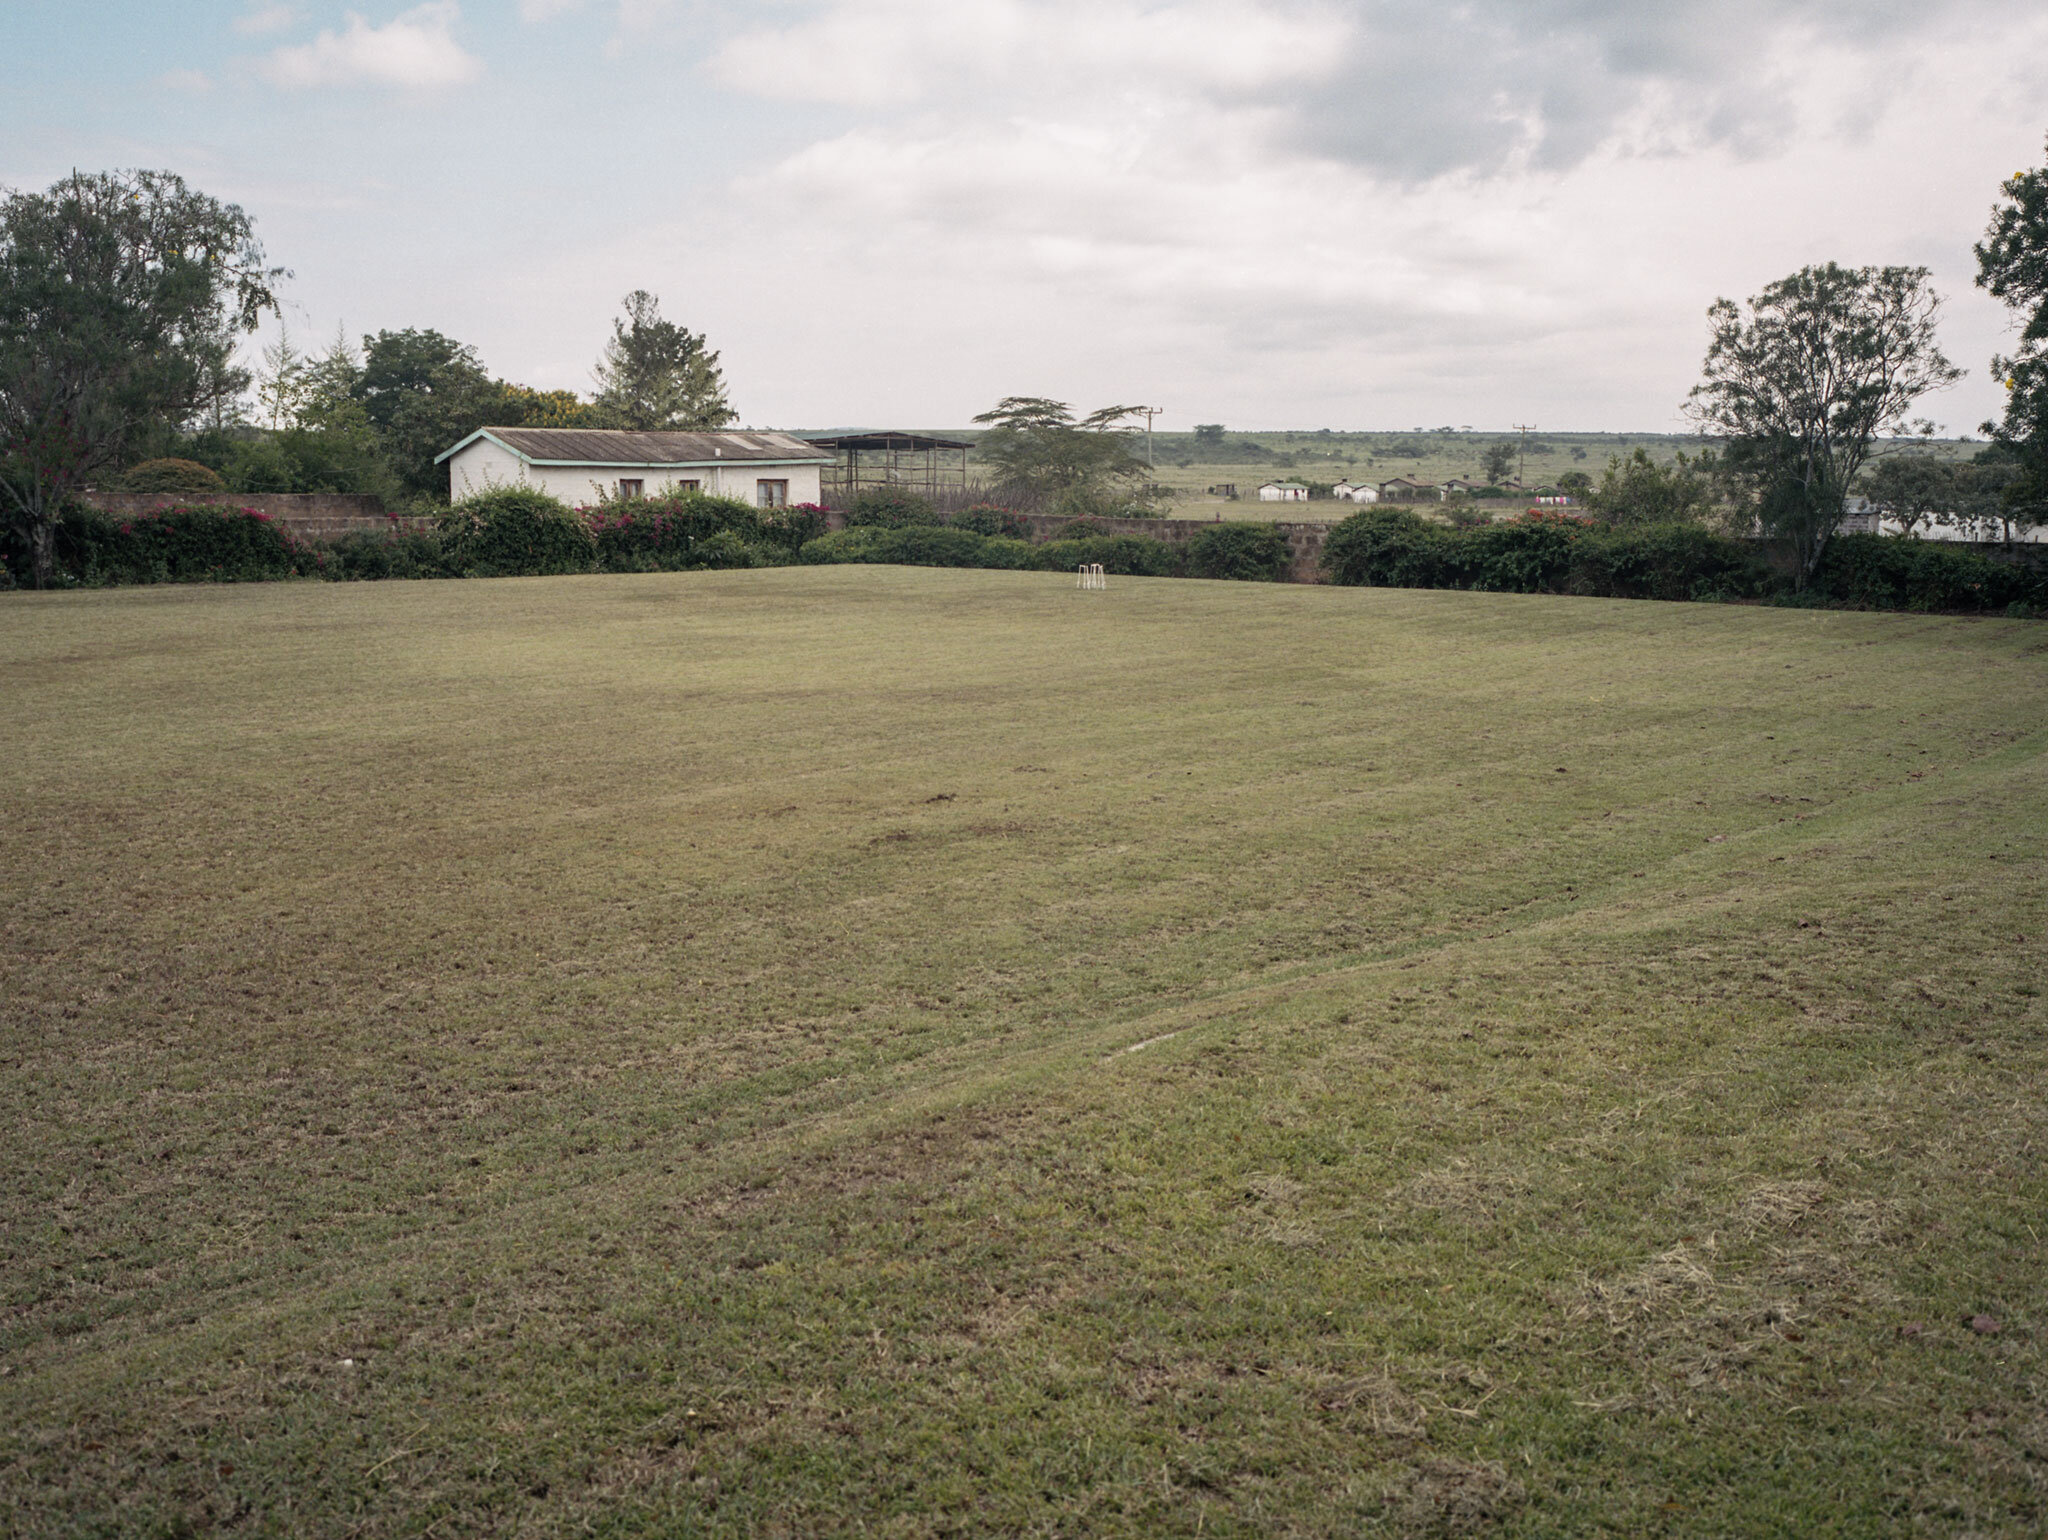 Lord Delamere's croquet lawn